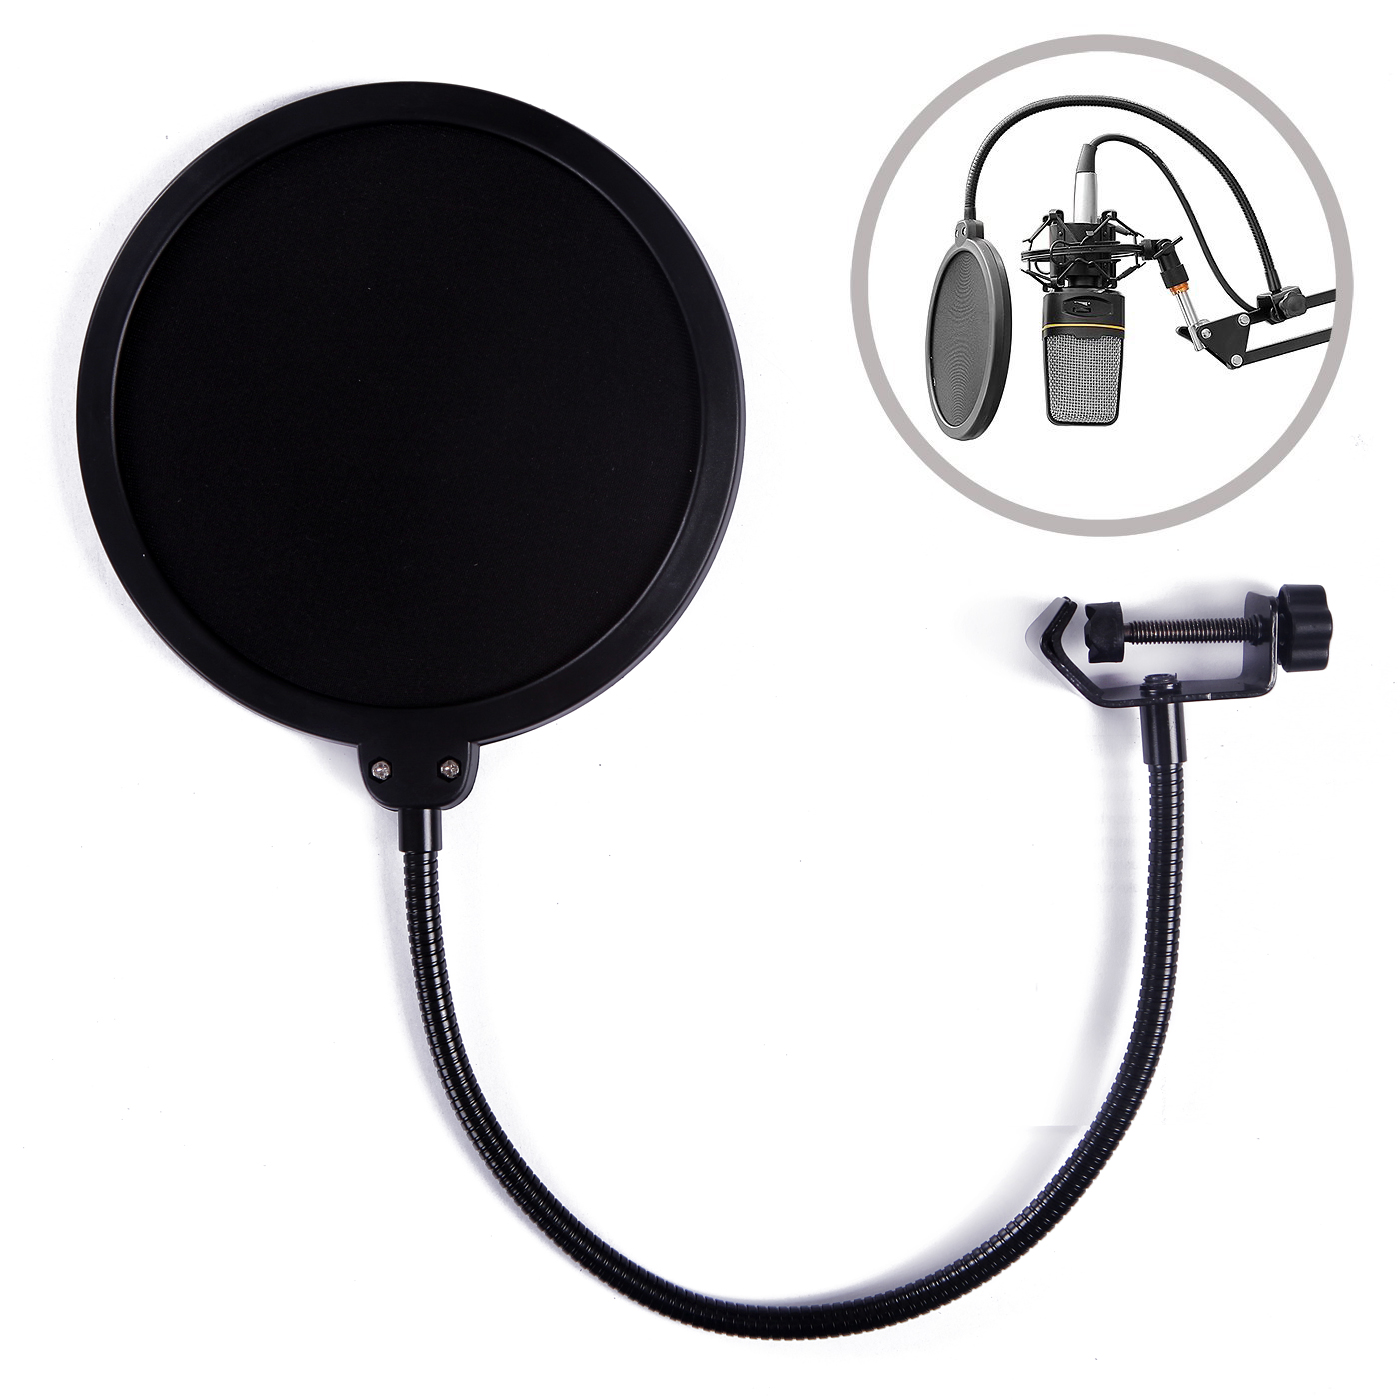 HDE 6 Inch Pop Filter Shield for Blue Yeti Microphones and USB ...